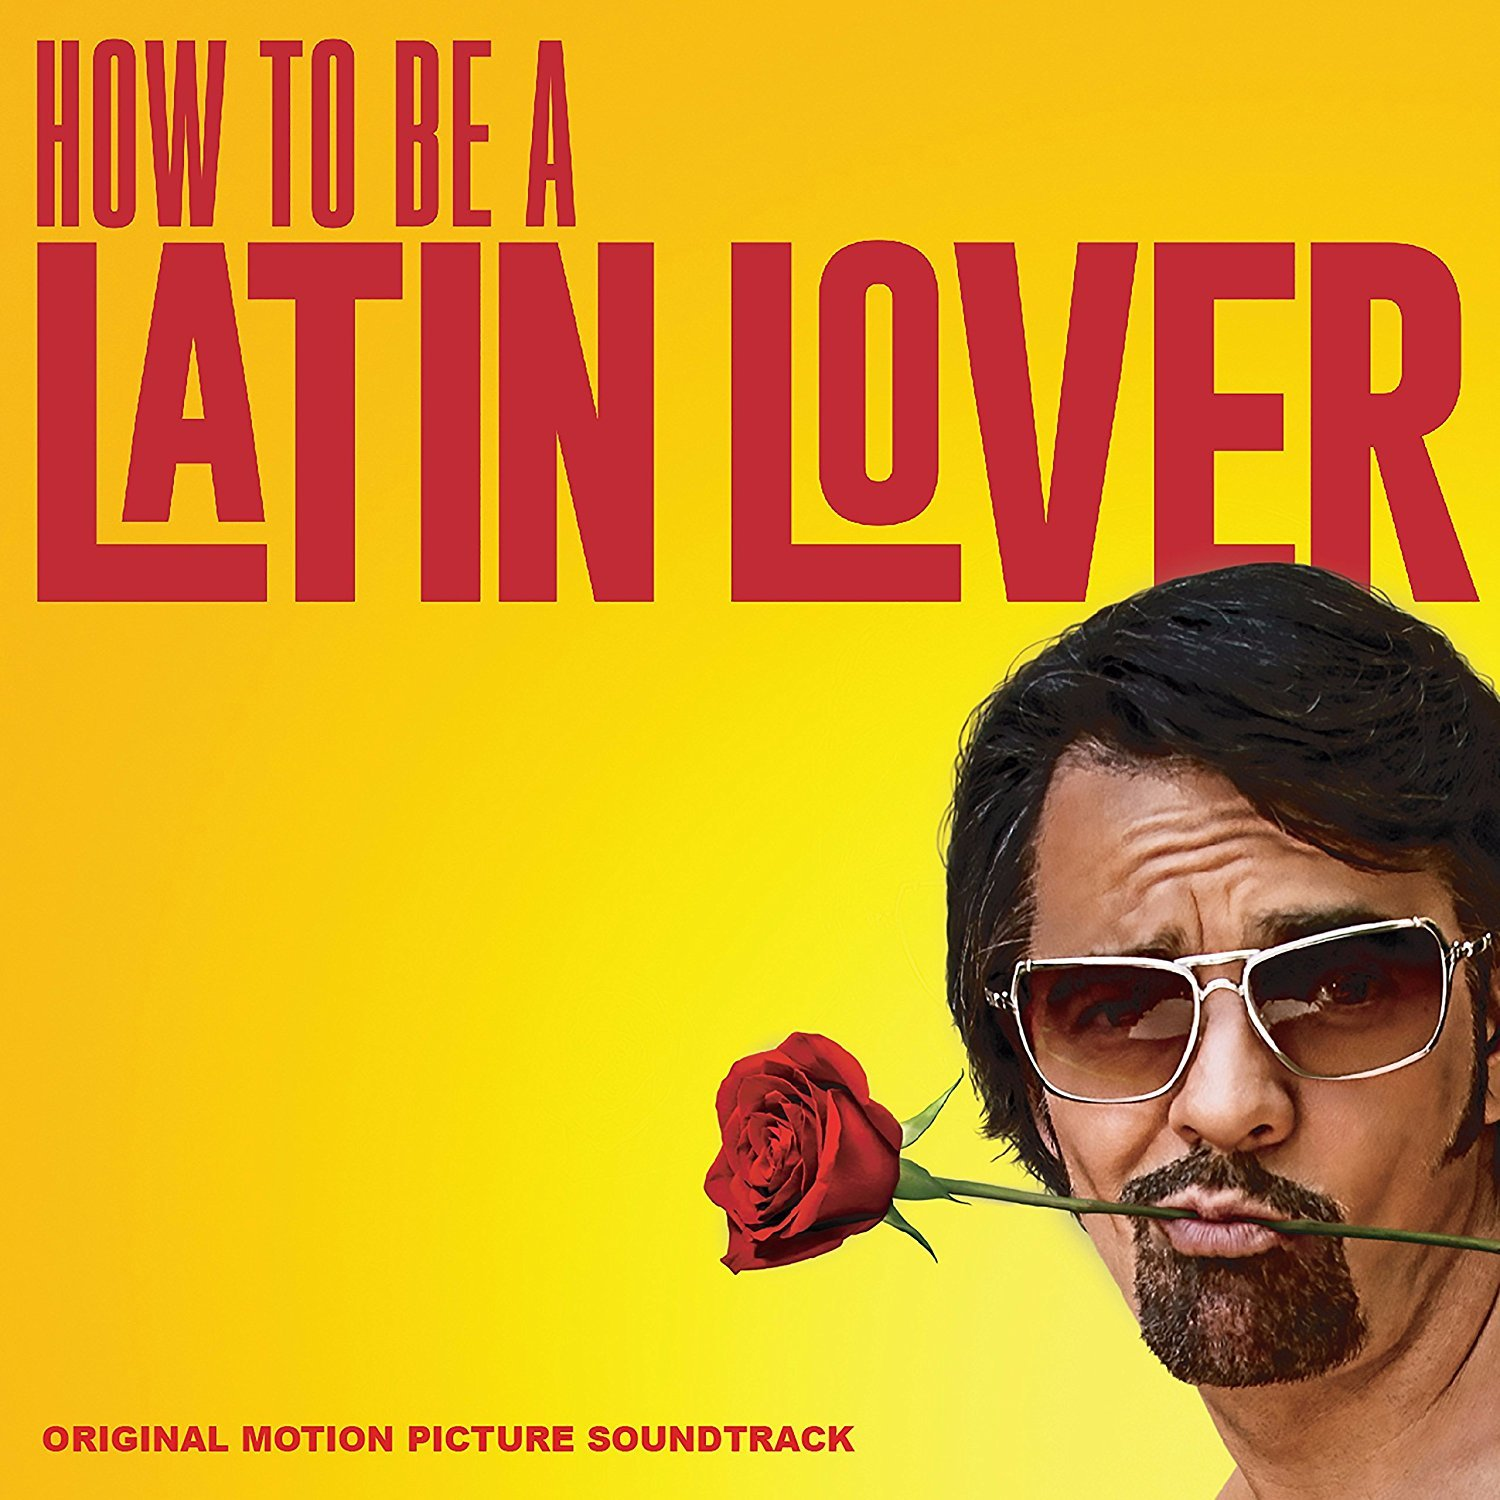 Larry fuller vs eugenio derbez in how to be a latin lover ccuart Image collections